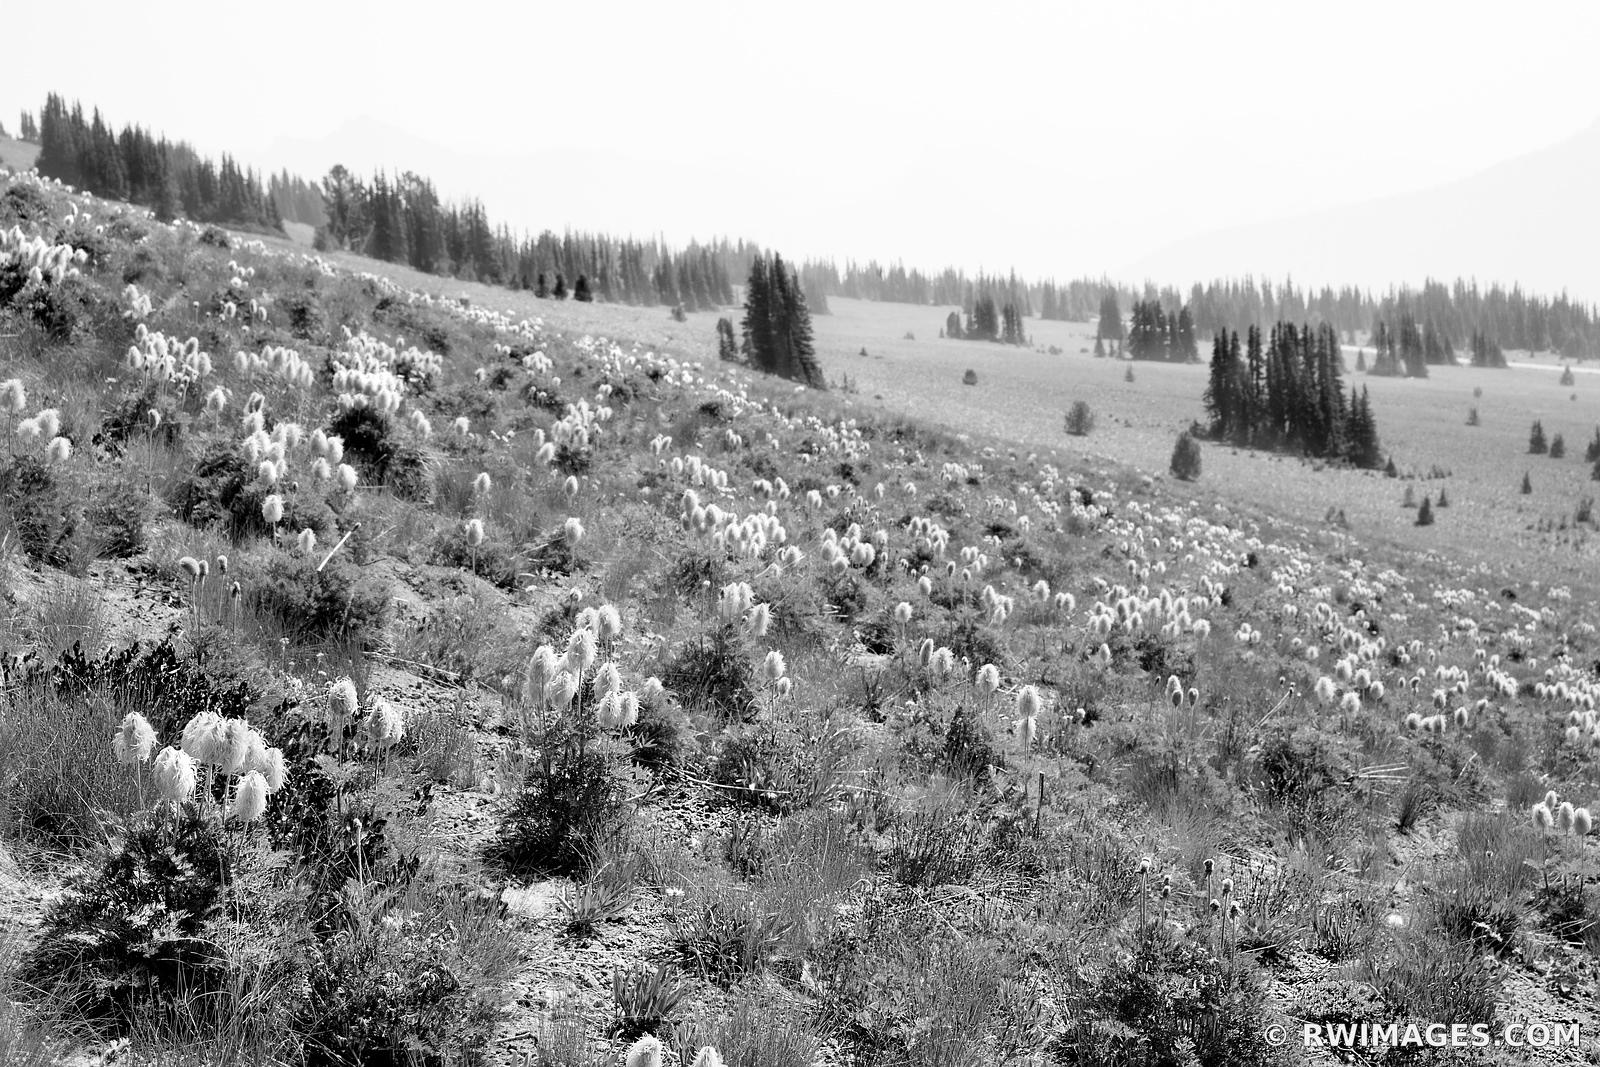 ALPINE MEADOW SUMMER WILDFLOWERS MOUNT RAINIER WASHINGTON BLACK AND WHITE